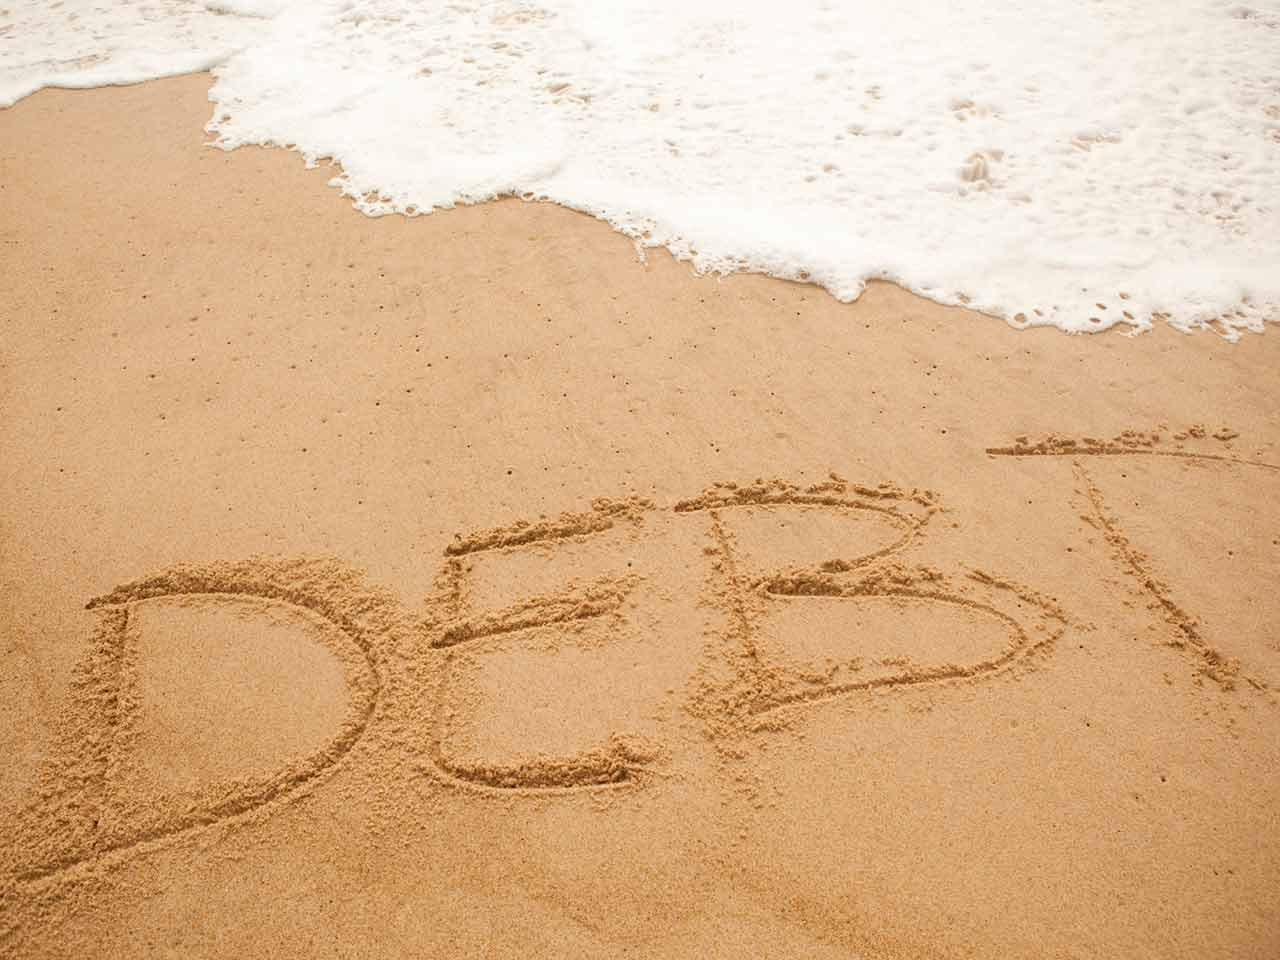 The word debt written in the sand being washed away